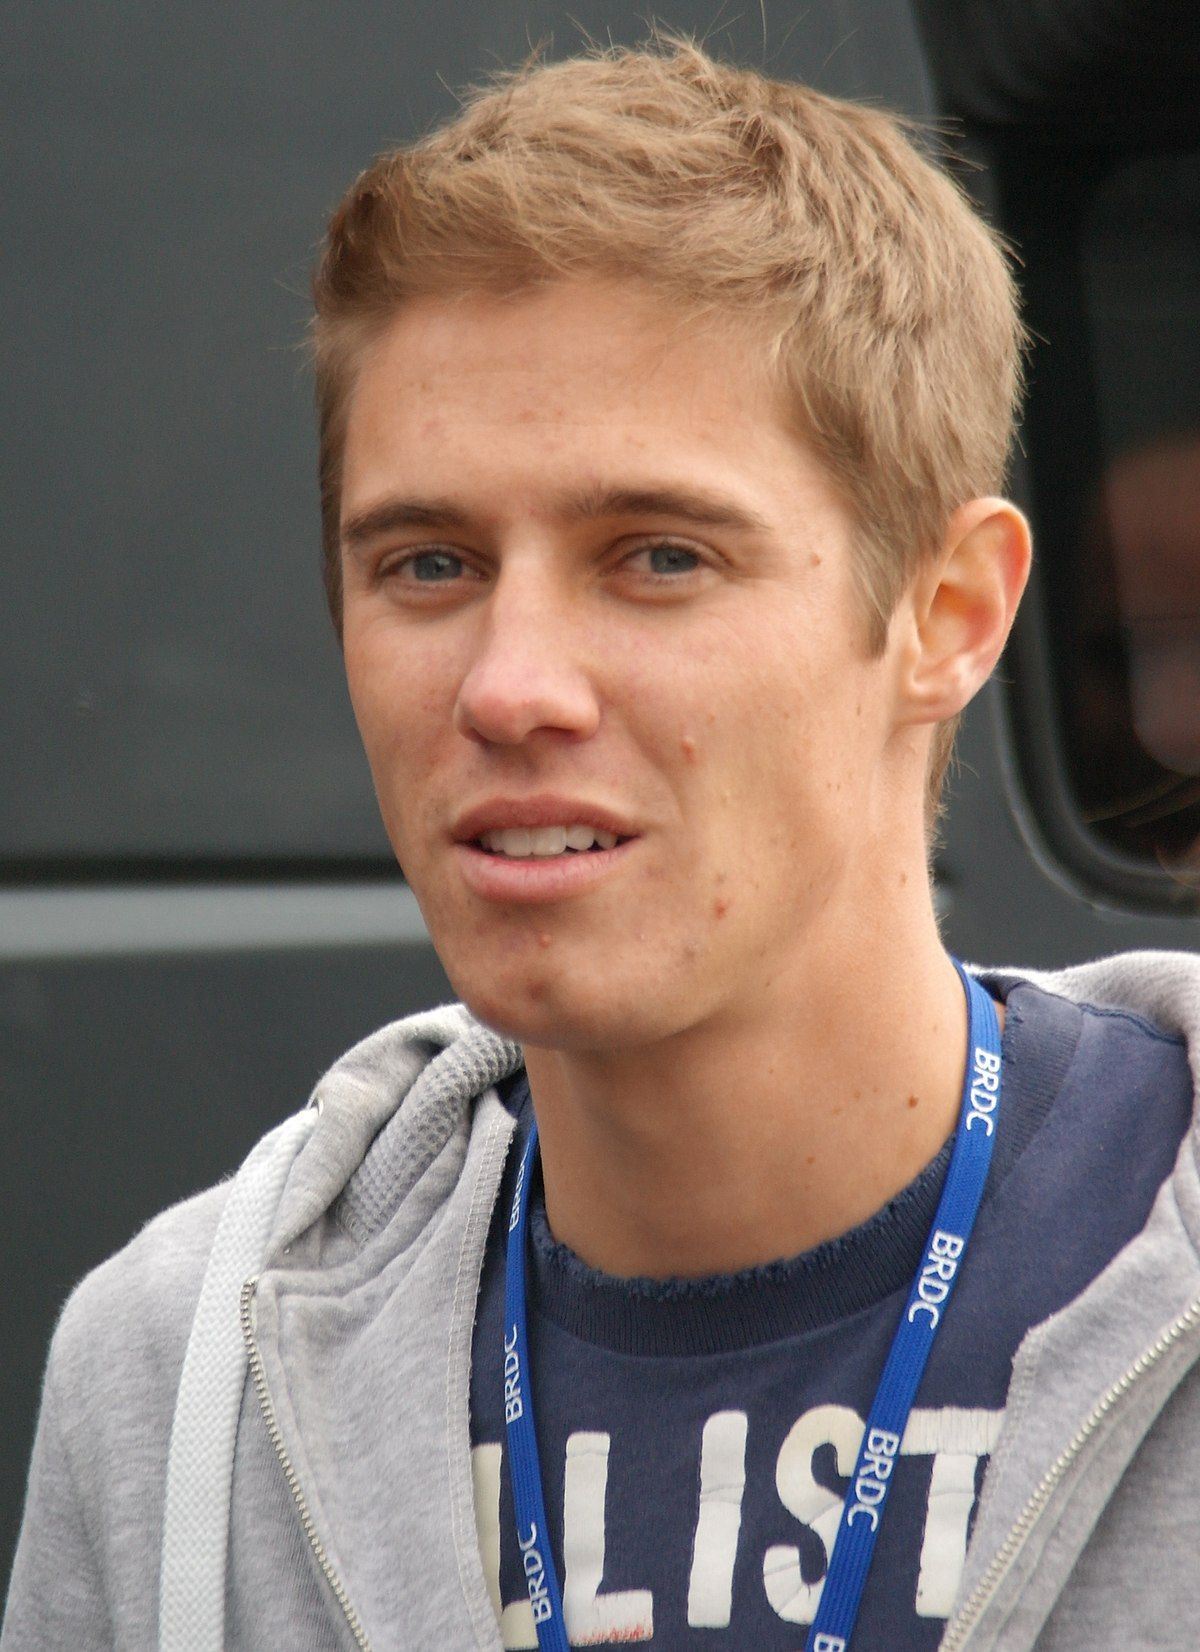 James Nash Racing Driver Wikipedia